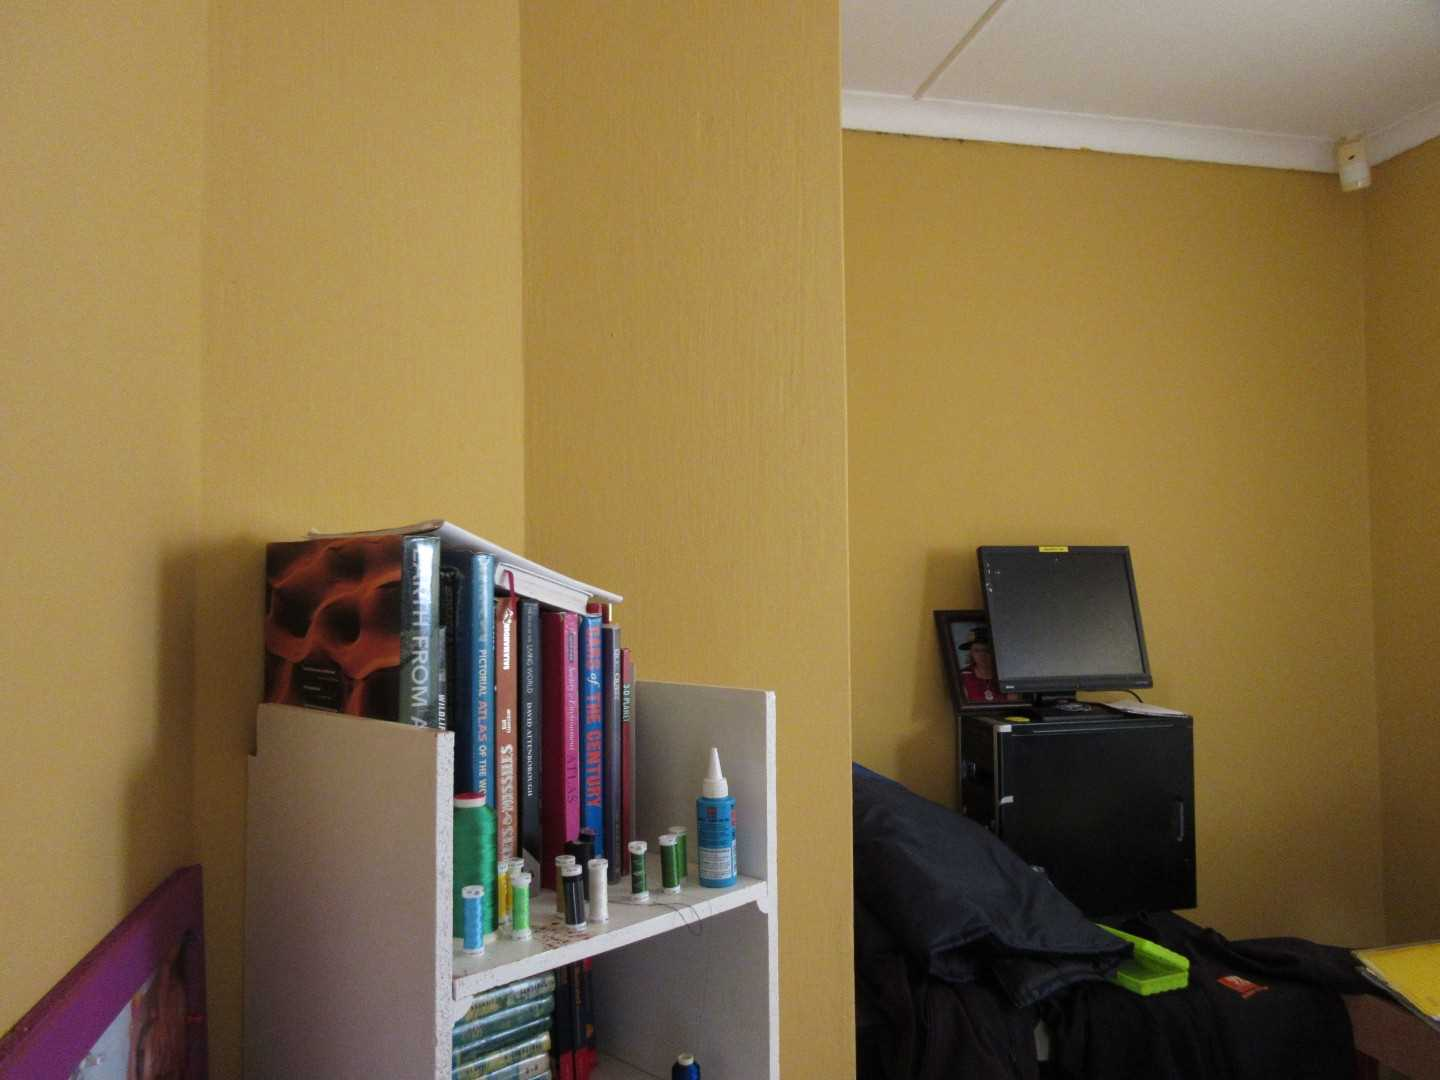 Small study room or sewing room